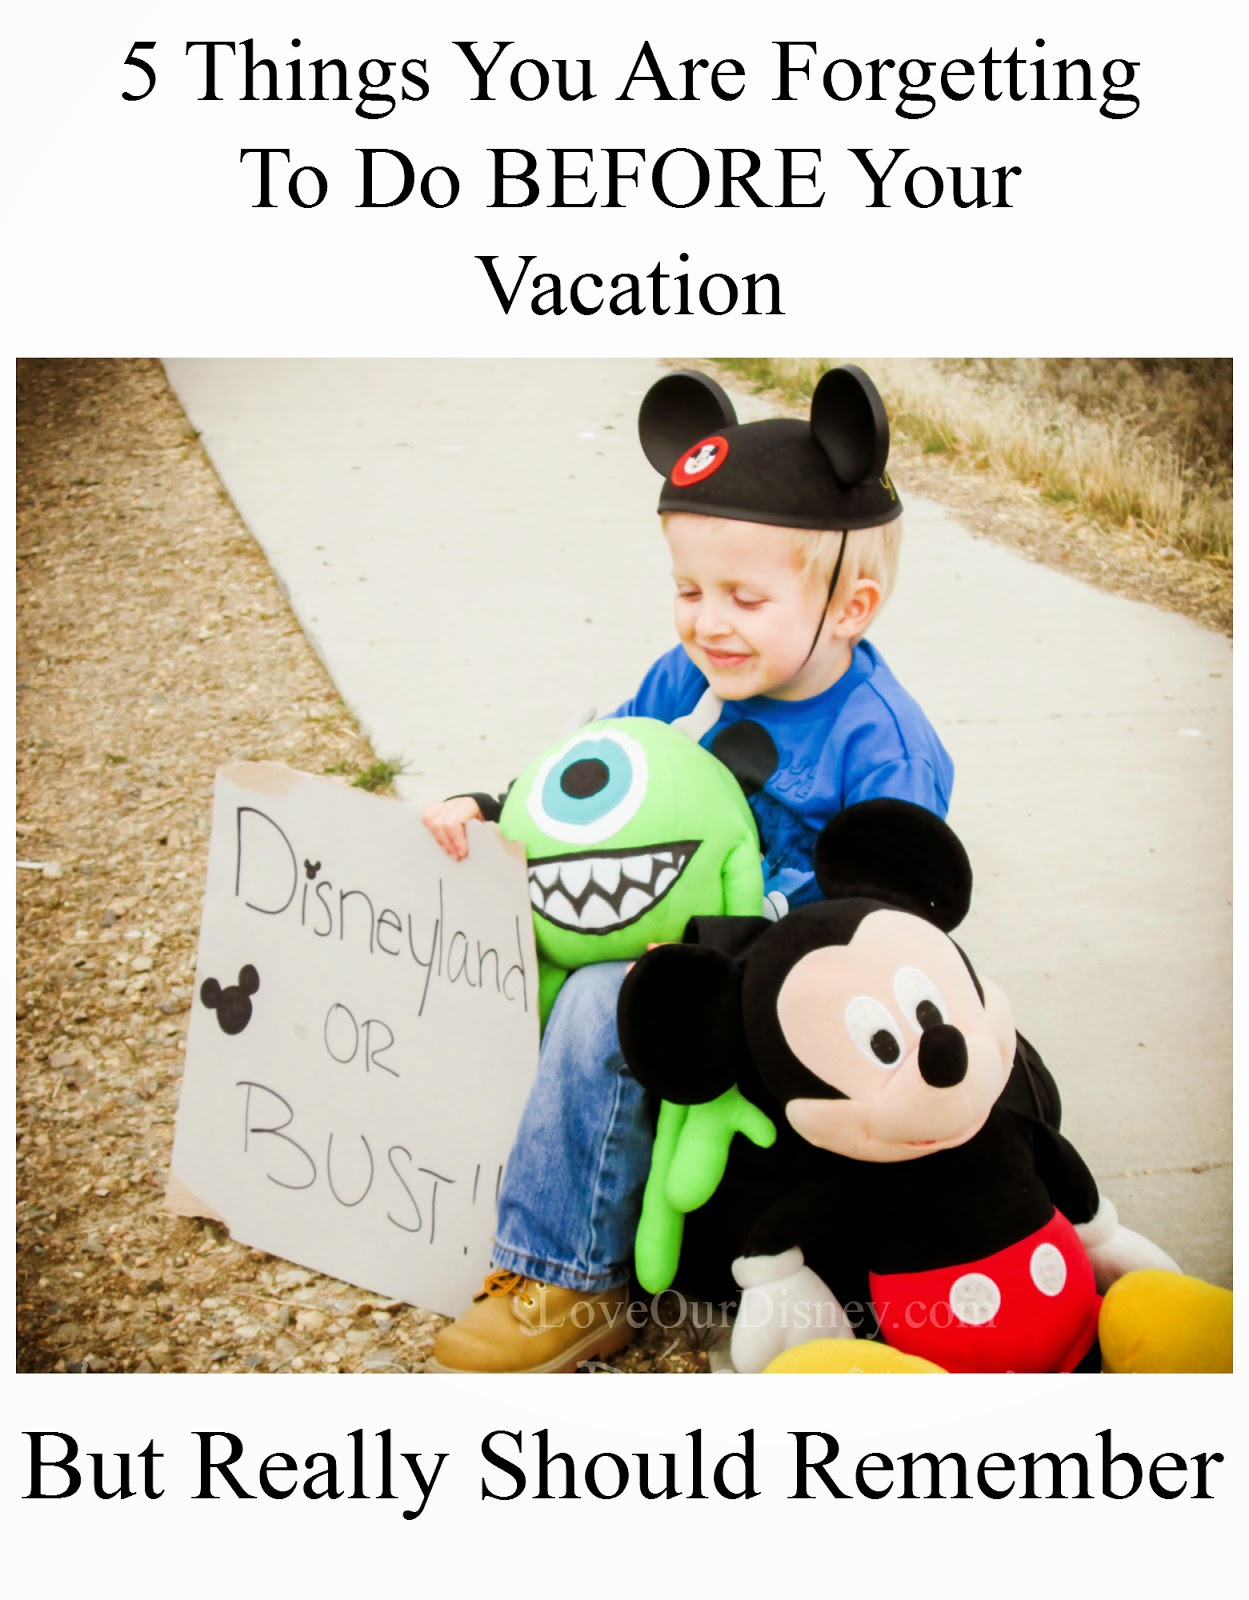 Are you forgetting to do these 5 things the week before vacation? LoveOurDisney.com